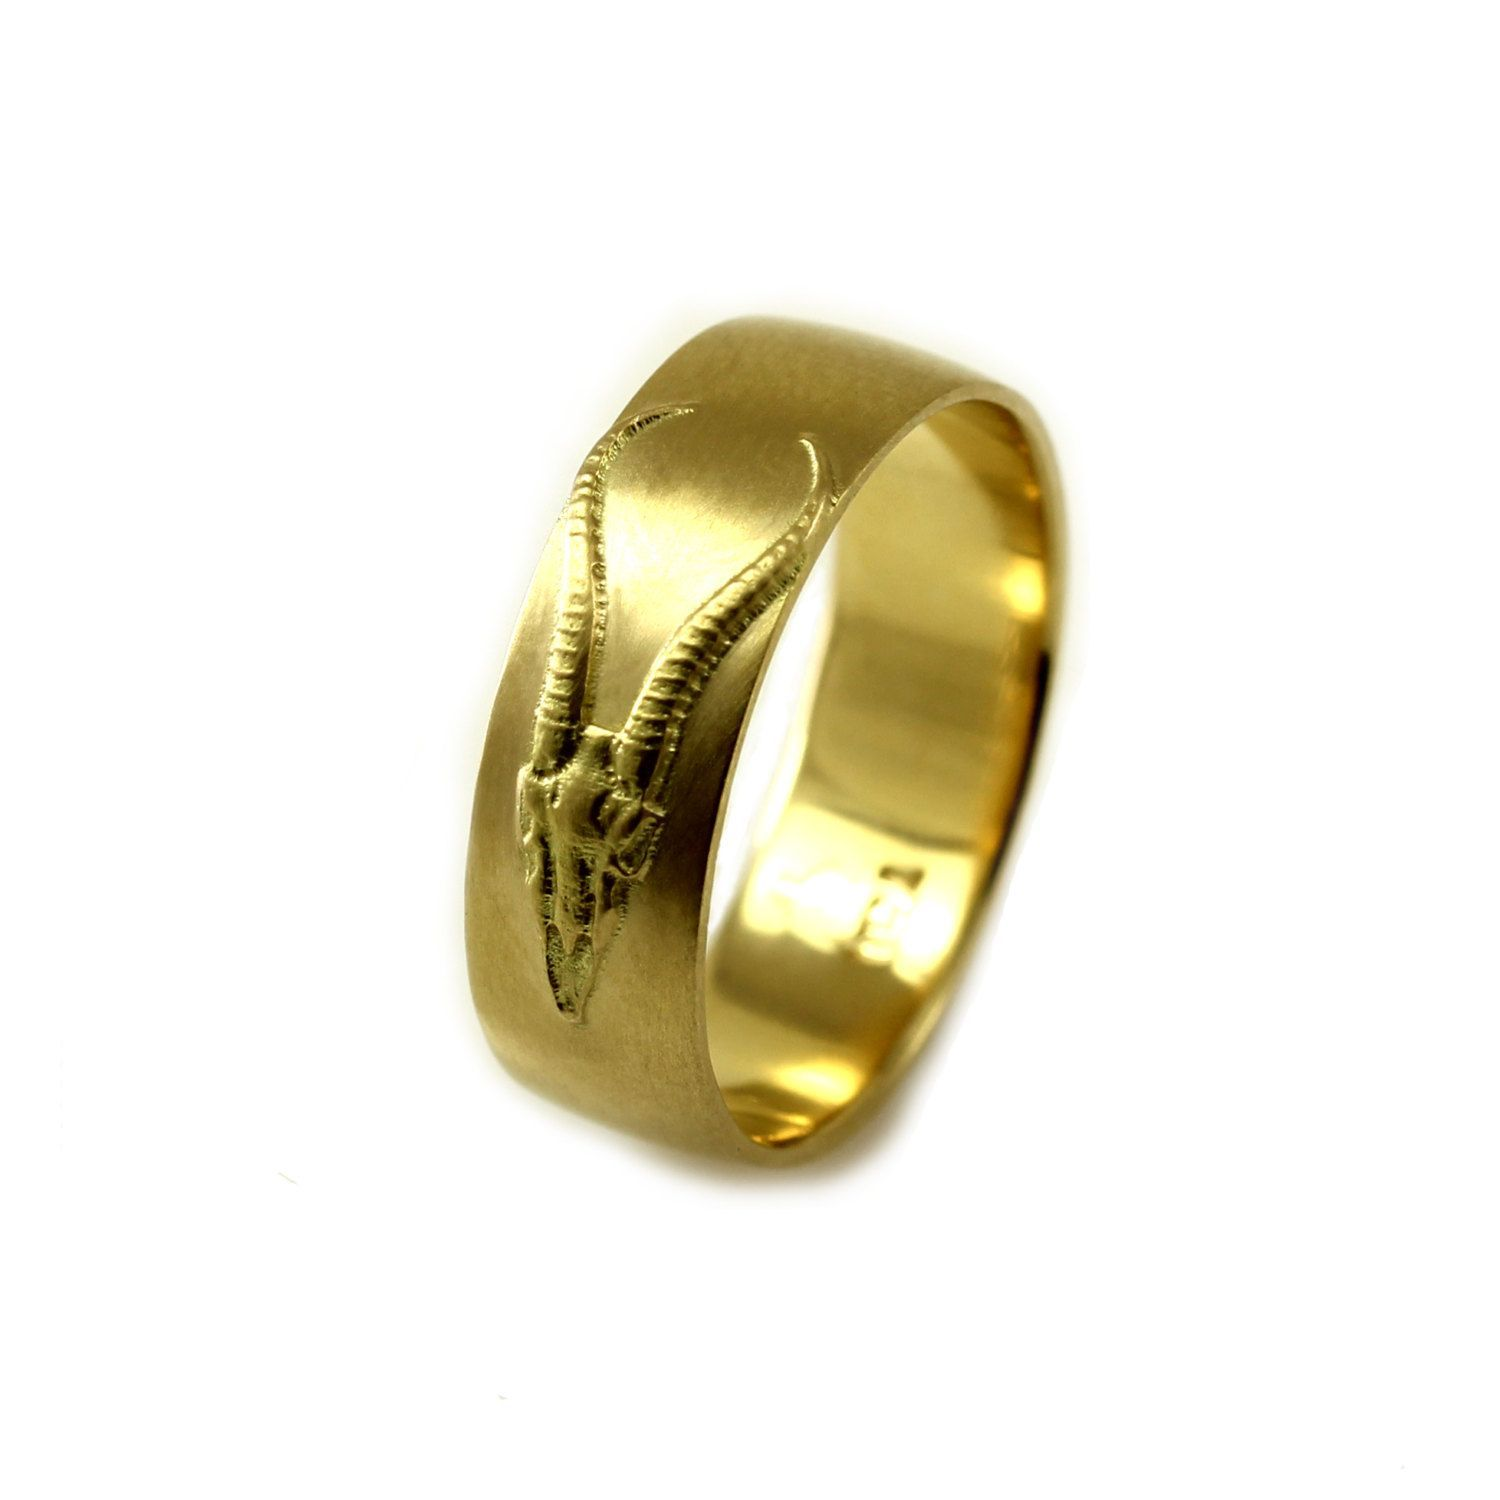 Very Unique Antelope Skull 18k Yellow Gold Mens Wedding Band I Modeled This Ring From A Springbok Gazelle Of Southwestern Africa